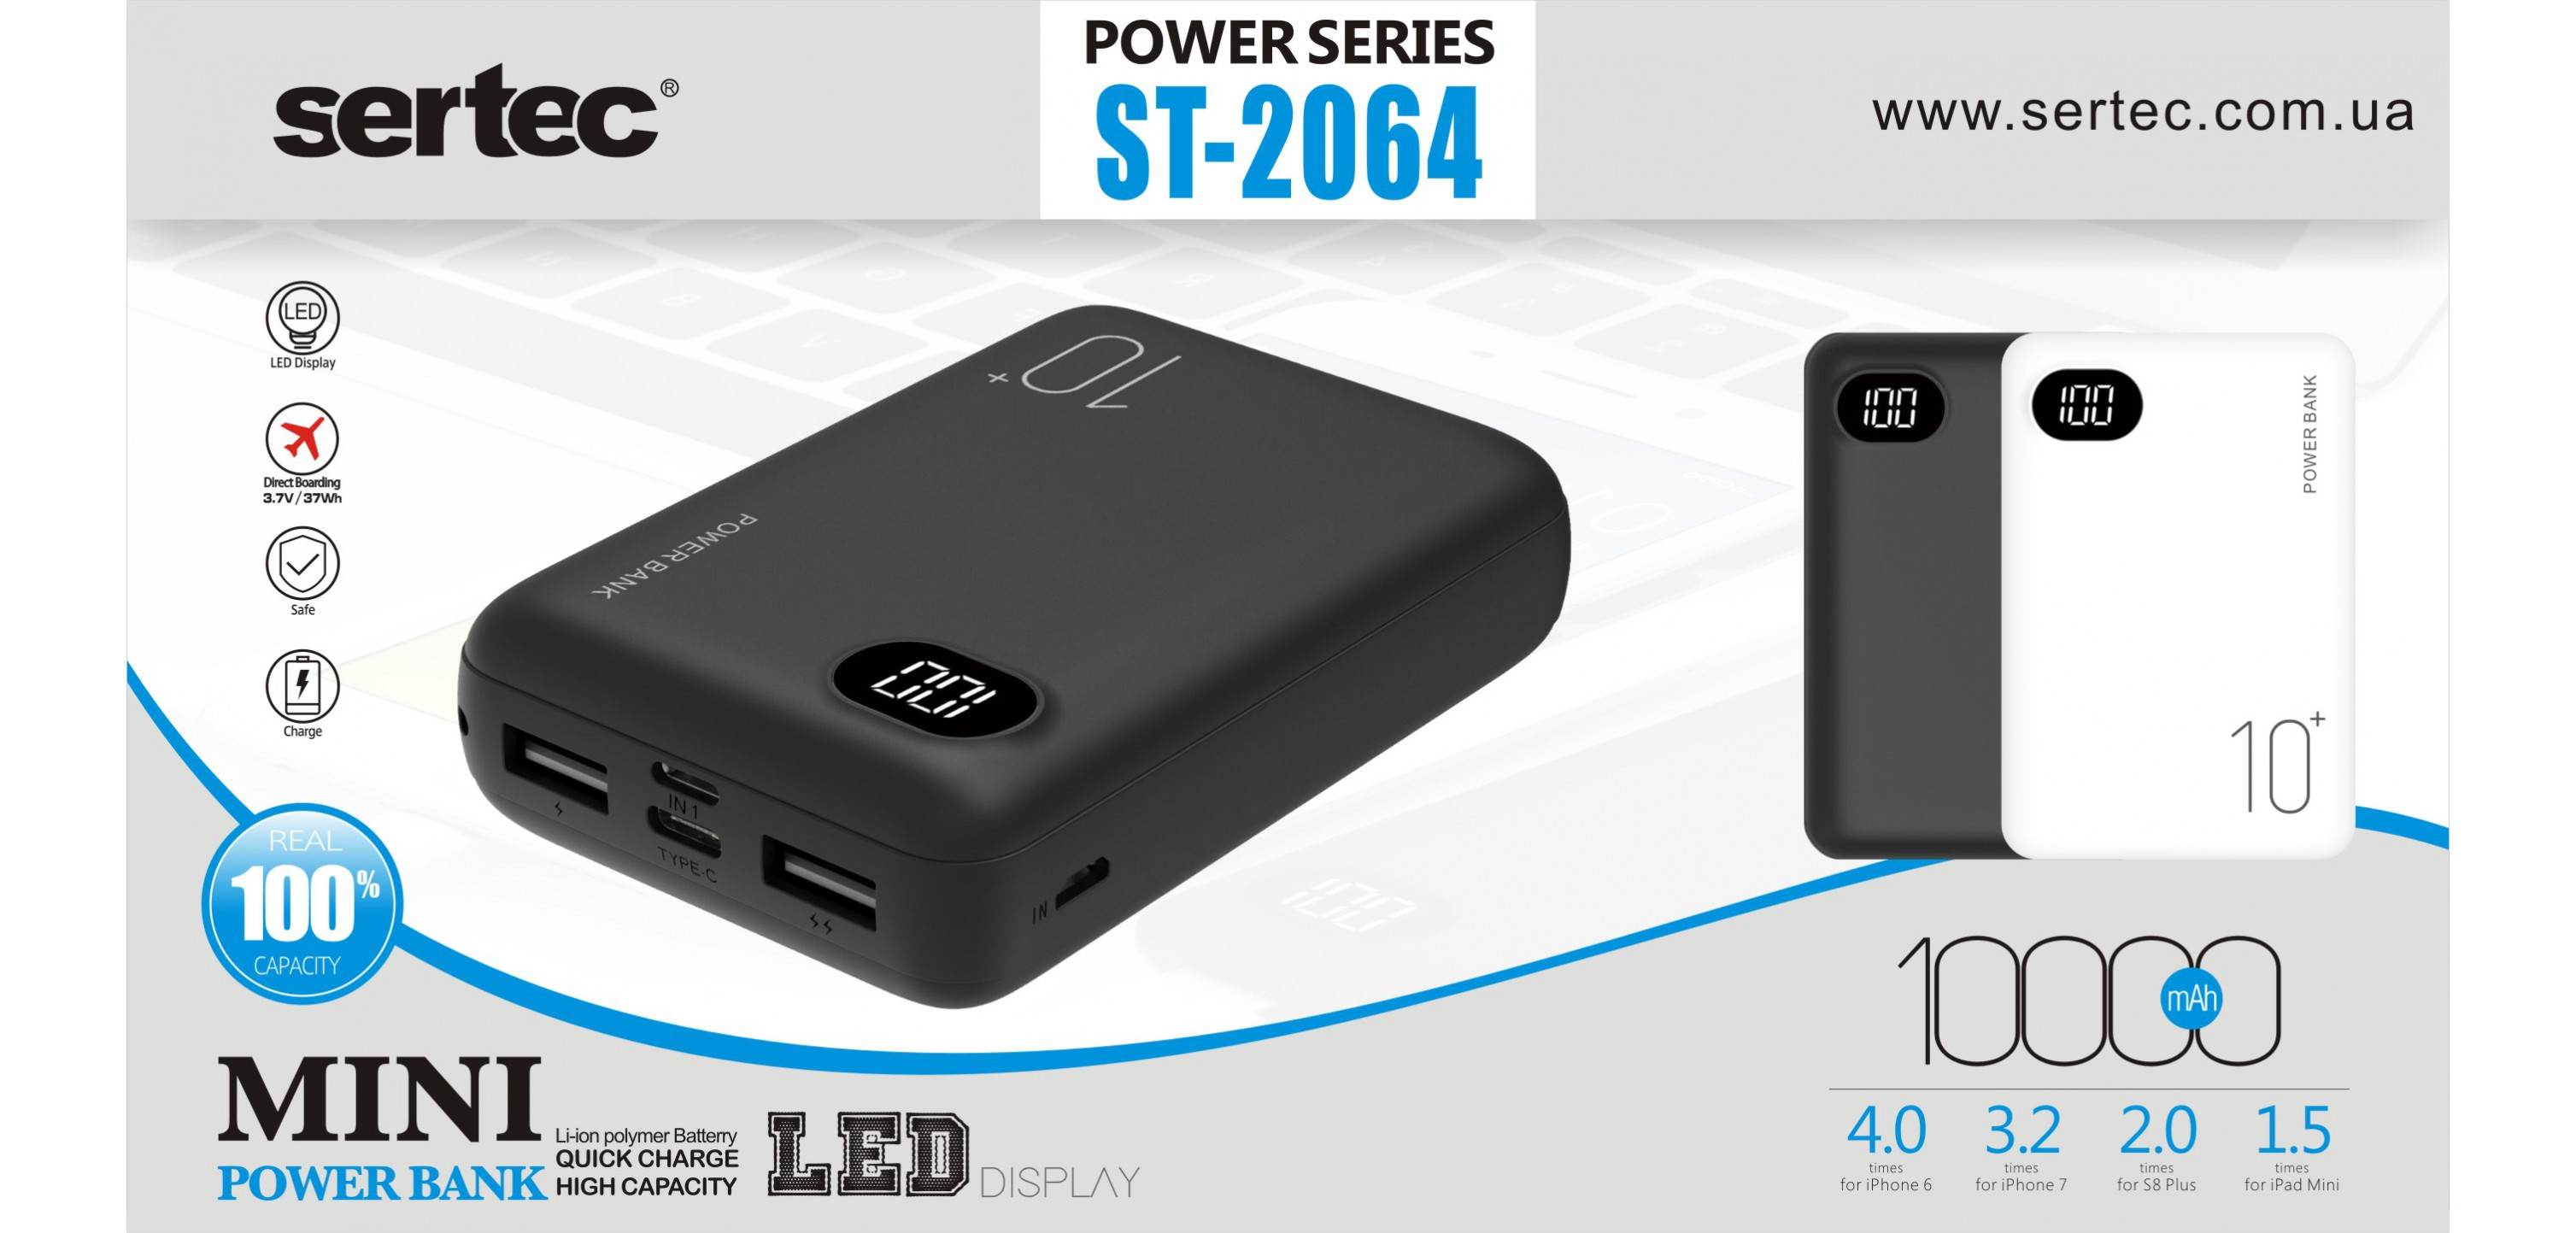 Power bank оптом